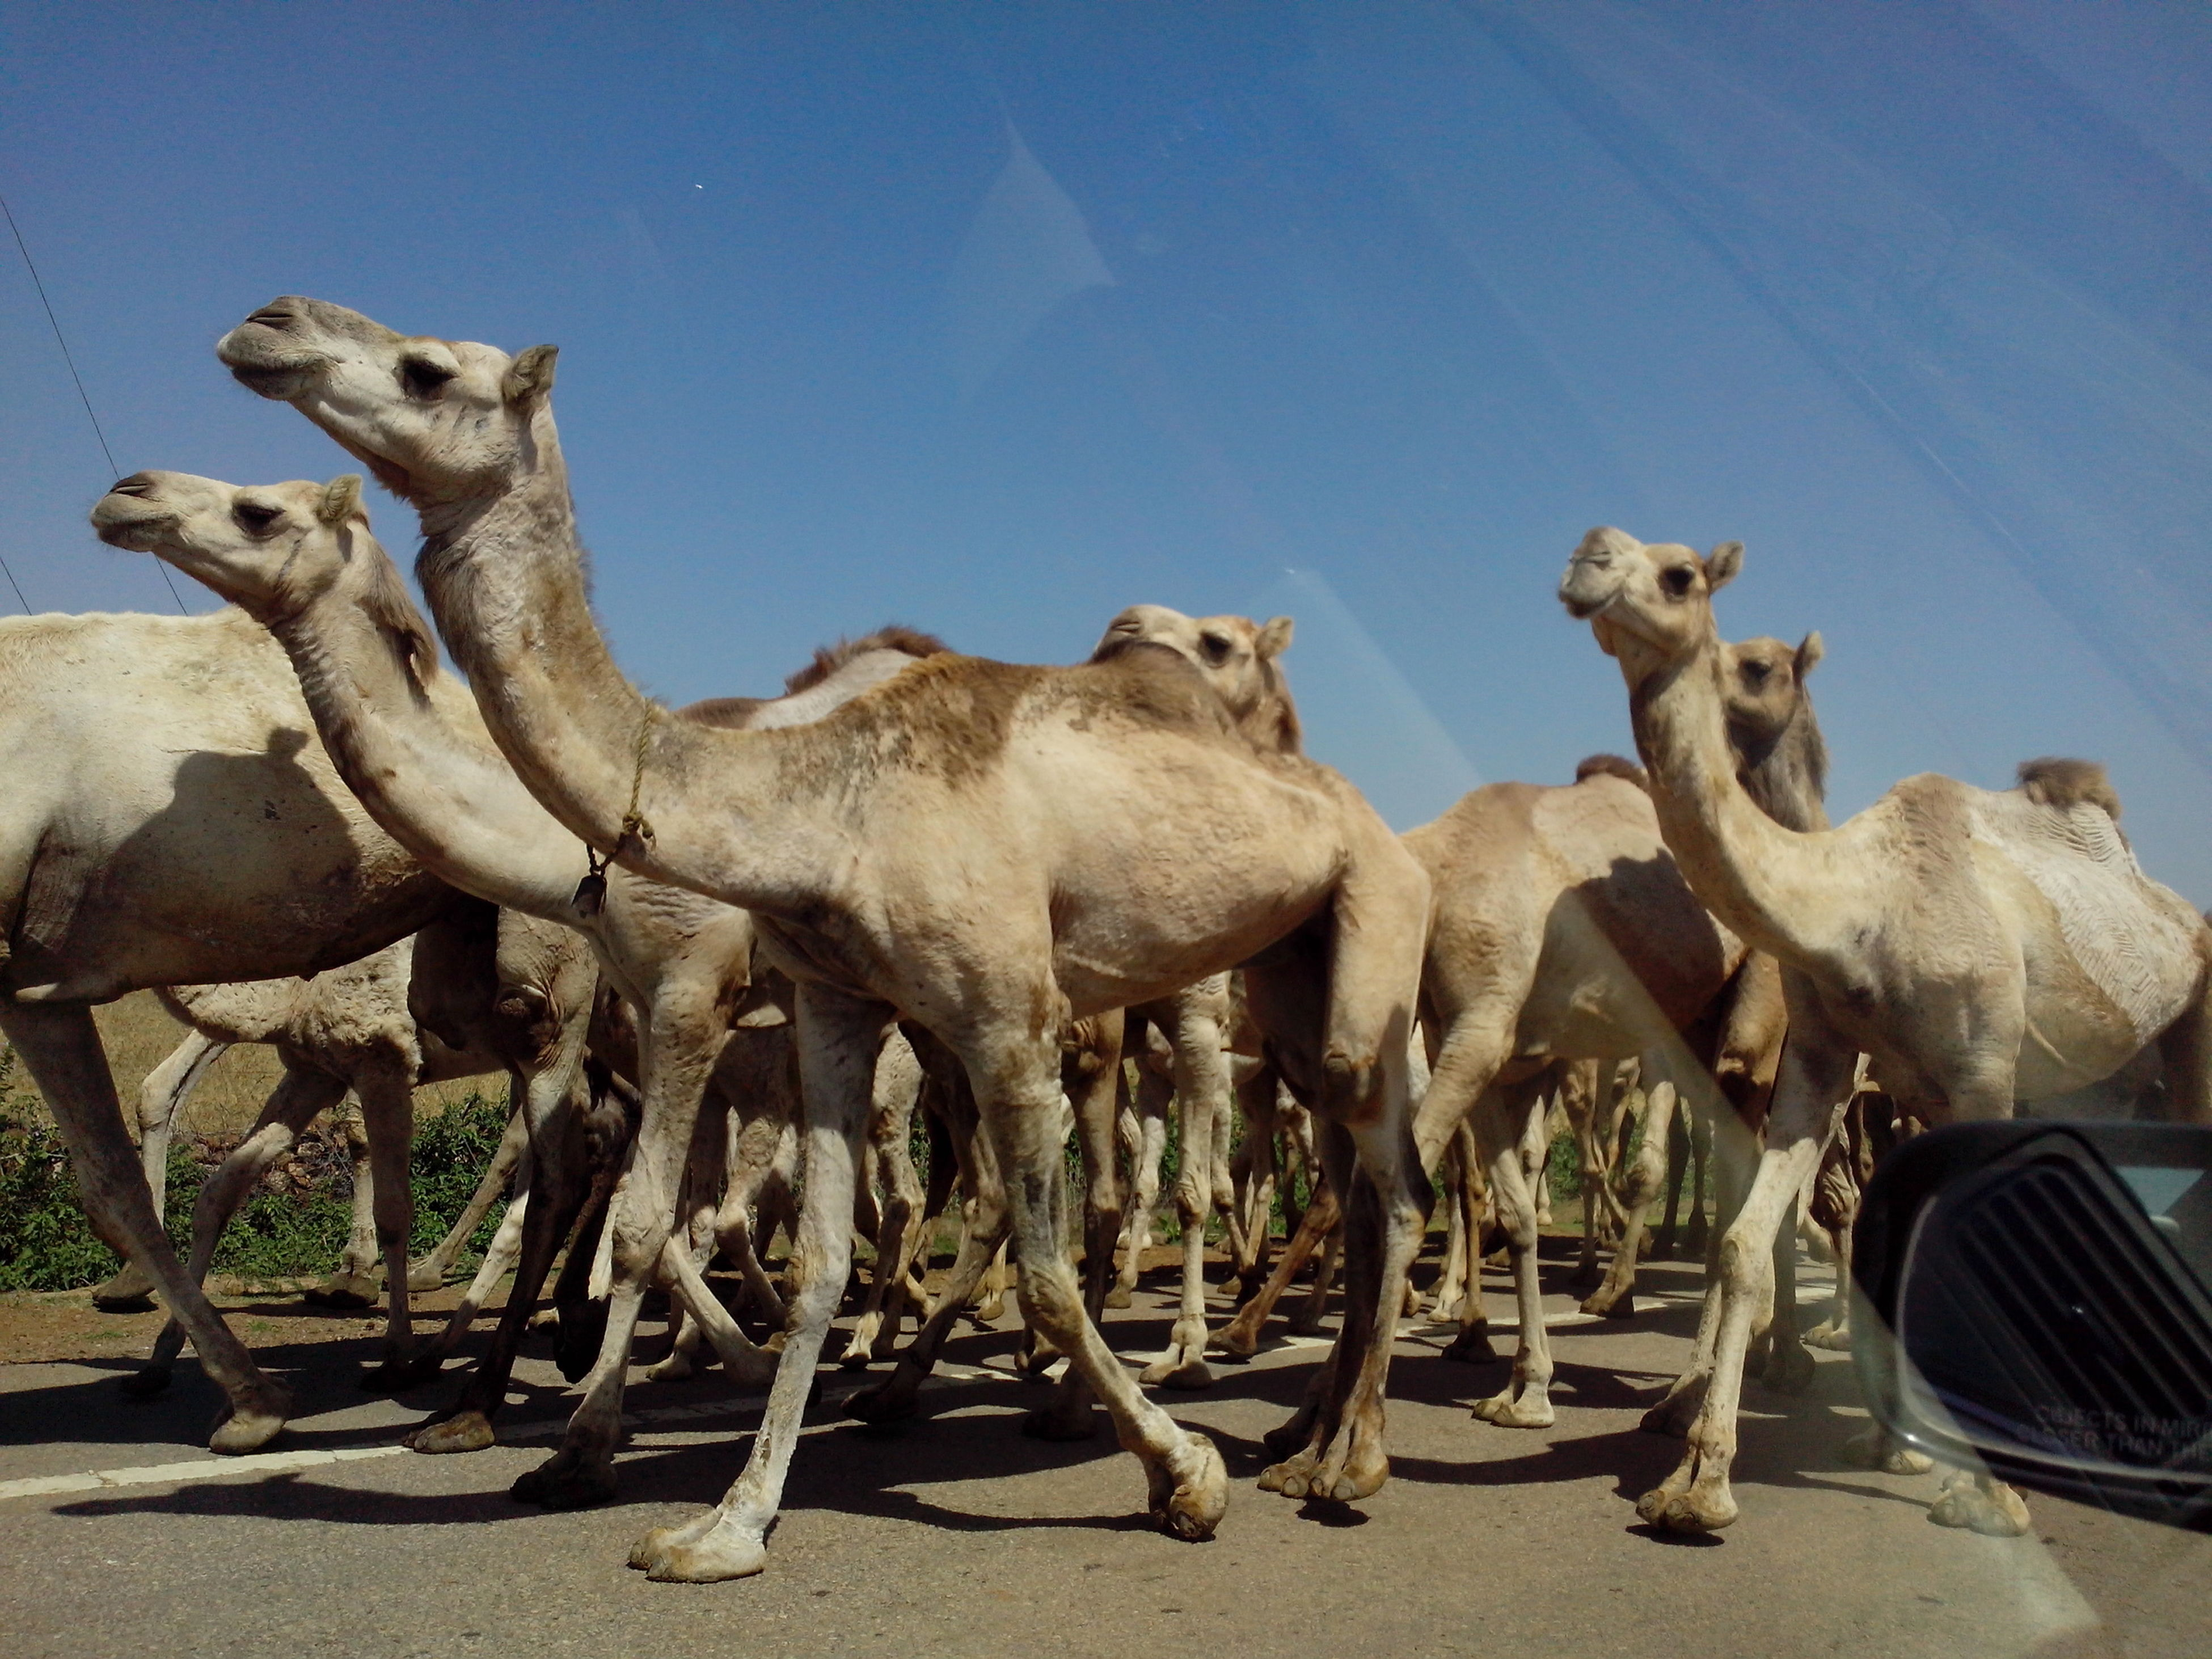 animal themes, mammal, livestock, domestic animals, camel, horse, clear sky, herbivorous, medium group of animals, two animals, three animals, sunlight, animals in the wild, wildlife, day, outdoors, togetherness, safari animals, animal family